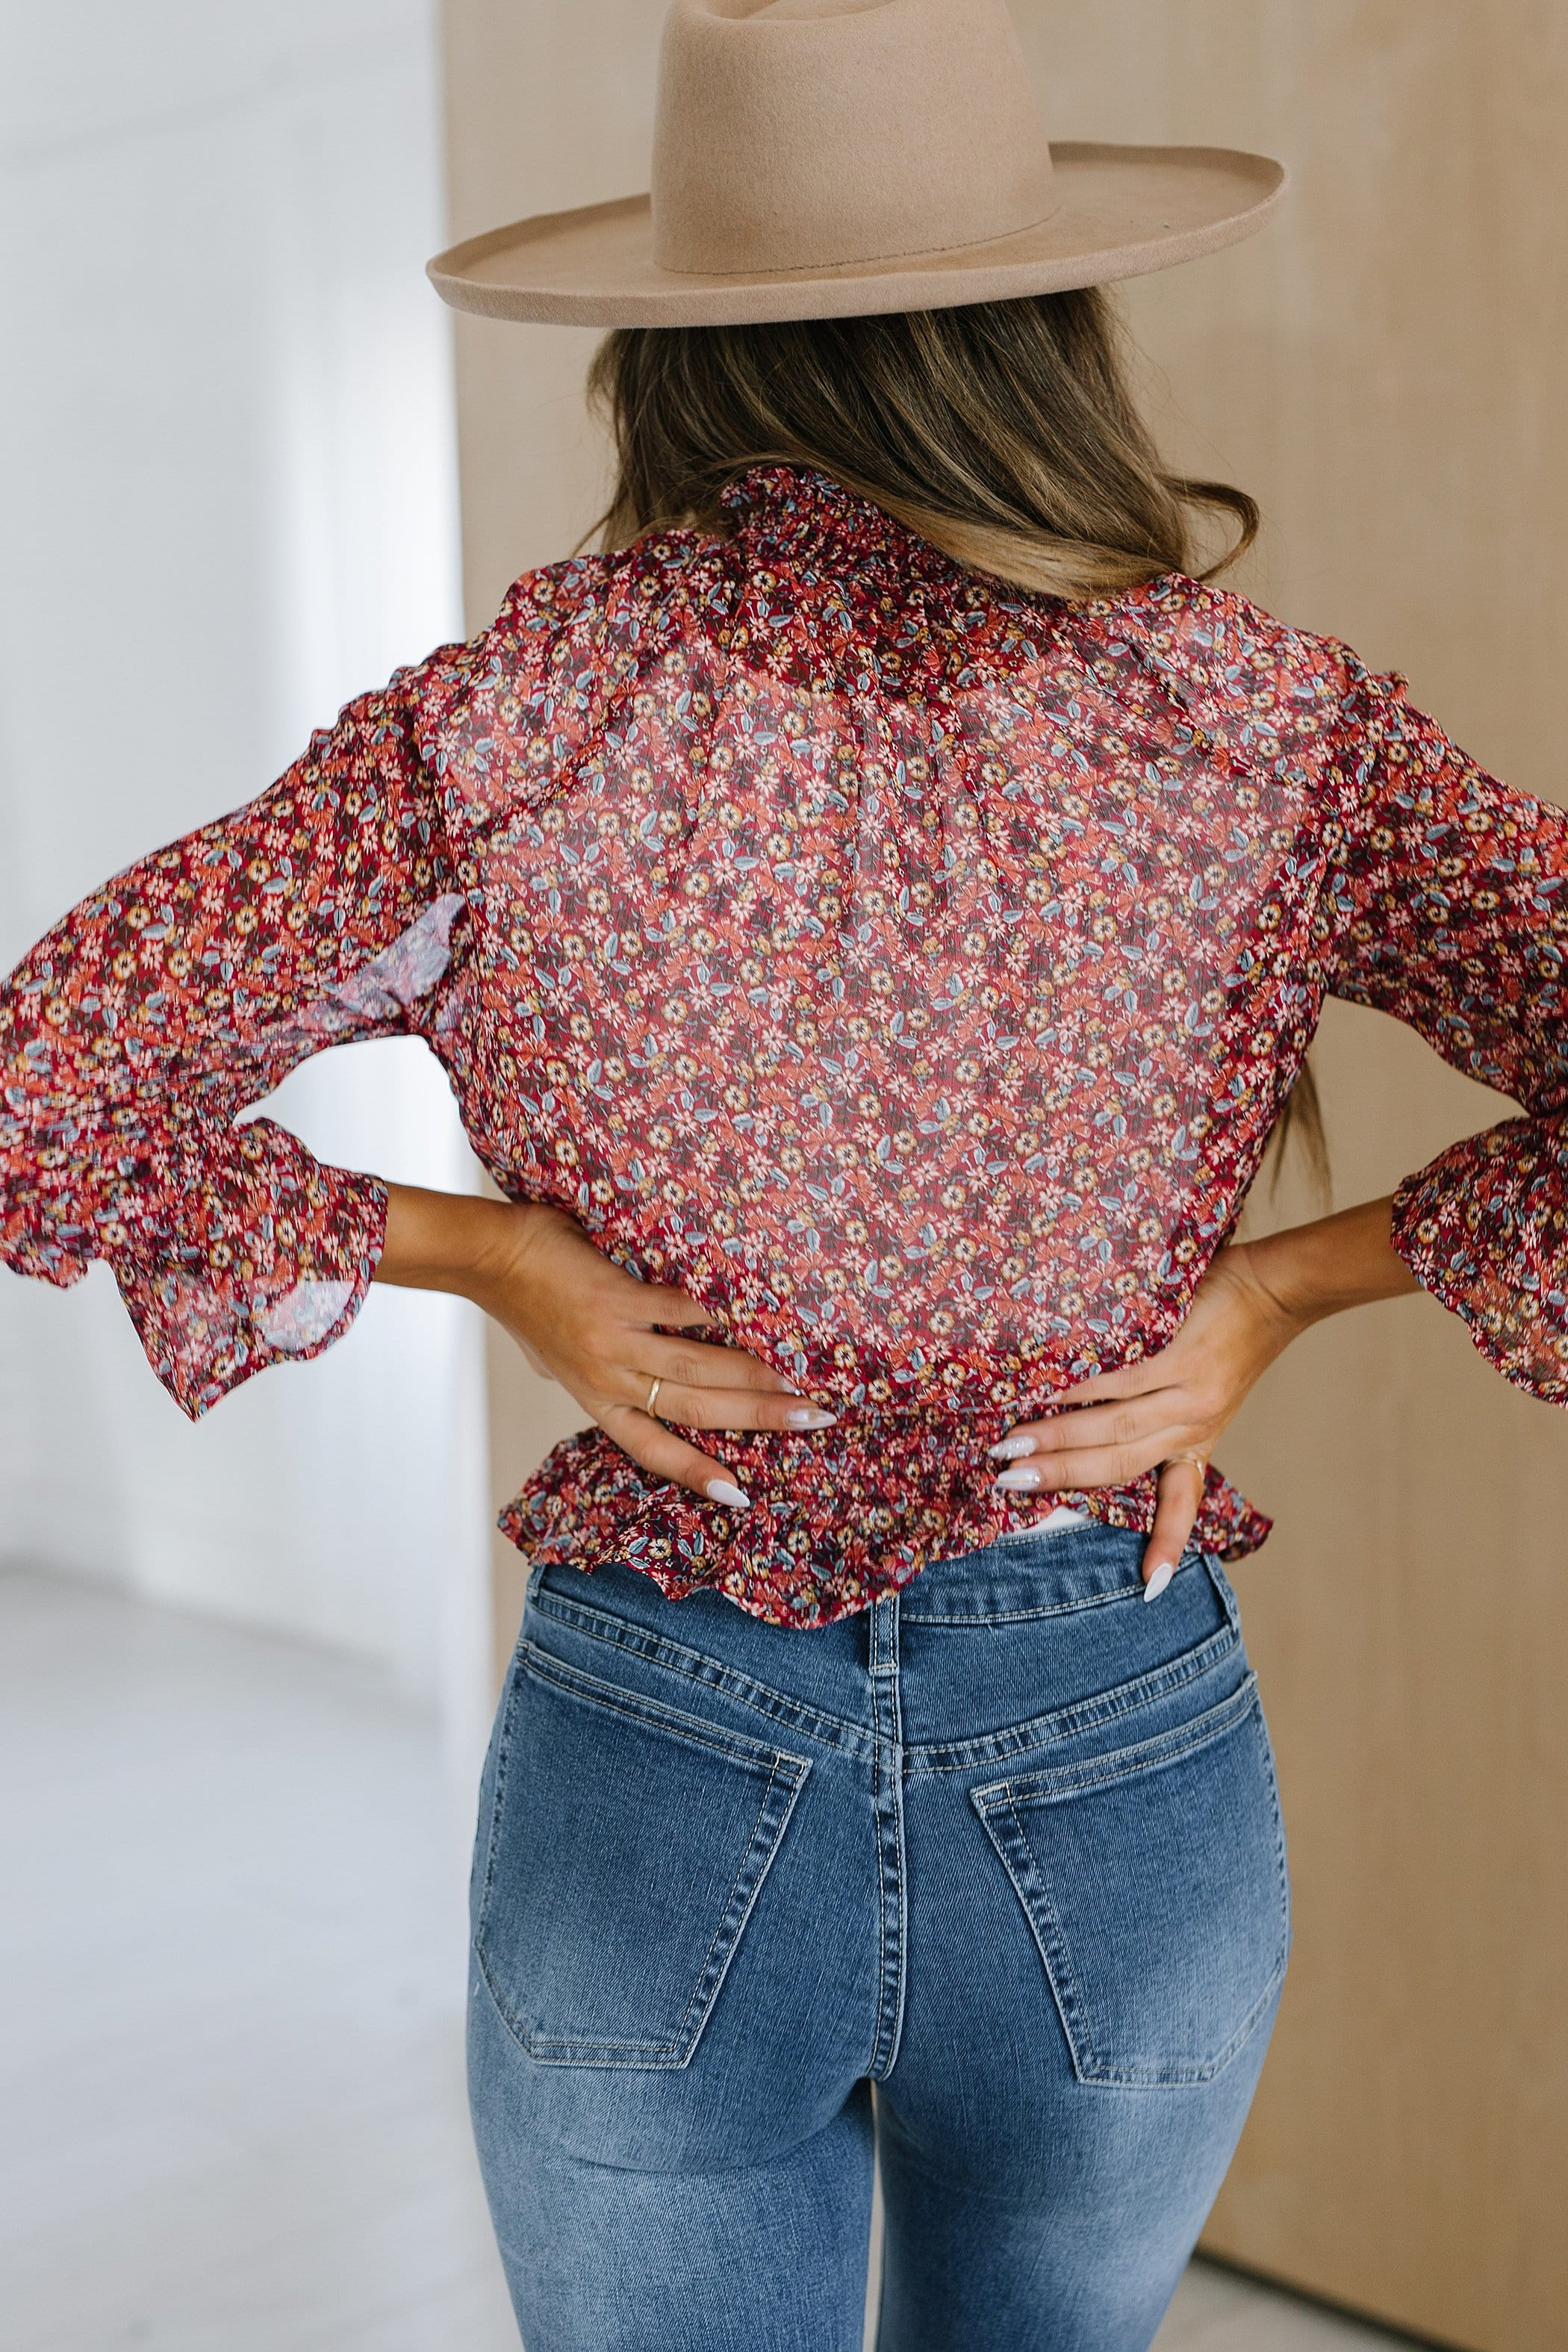 The Felicity Floral Smocked Top in Black and Burgundy